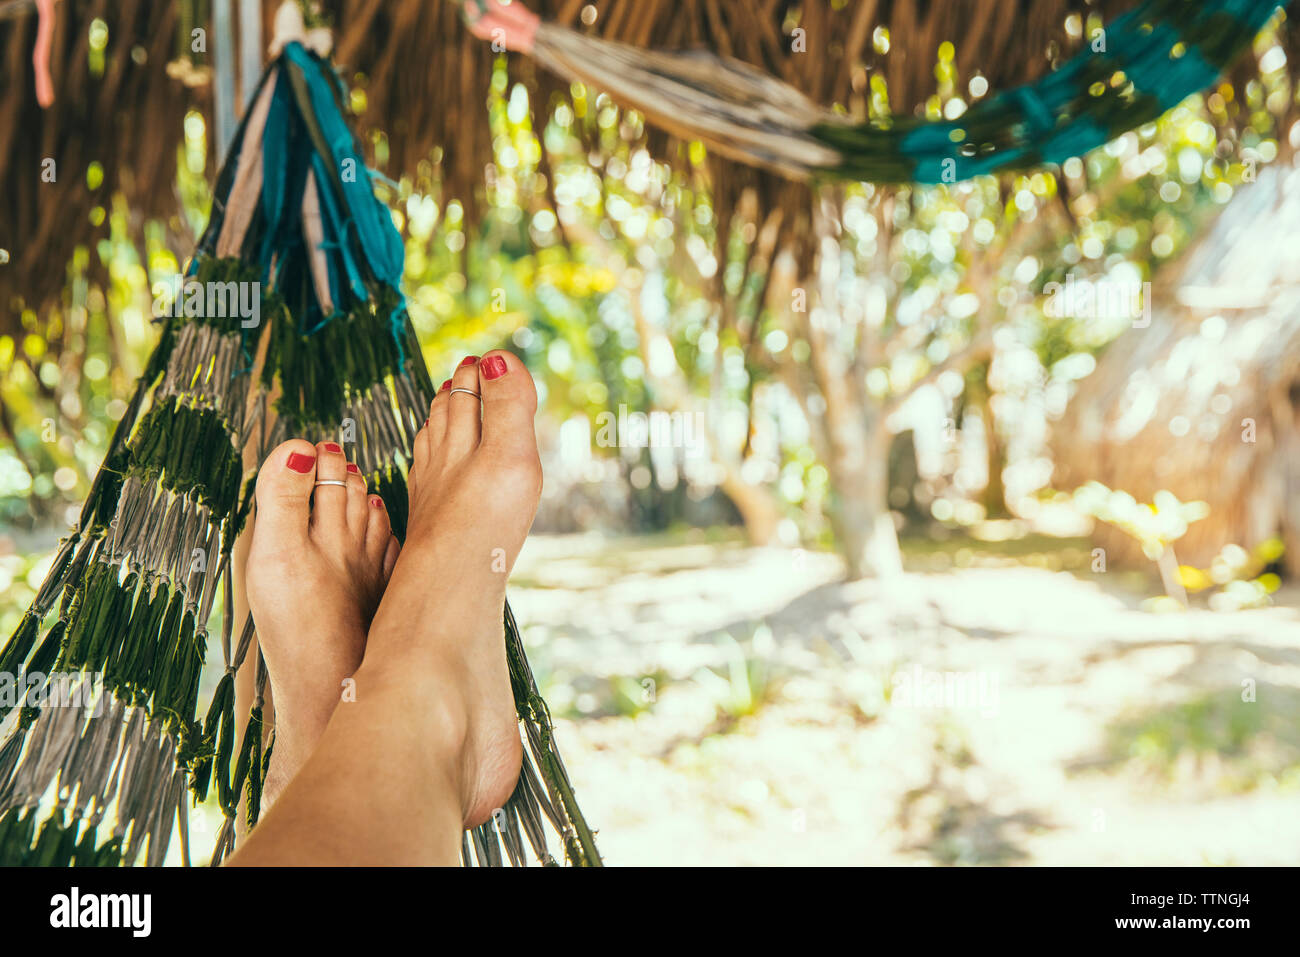 Low section of woman relaxing on hammock during summer - Stock Image